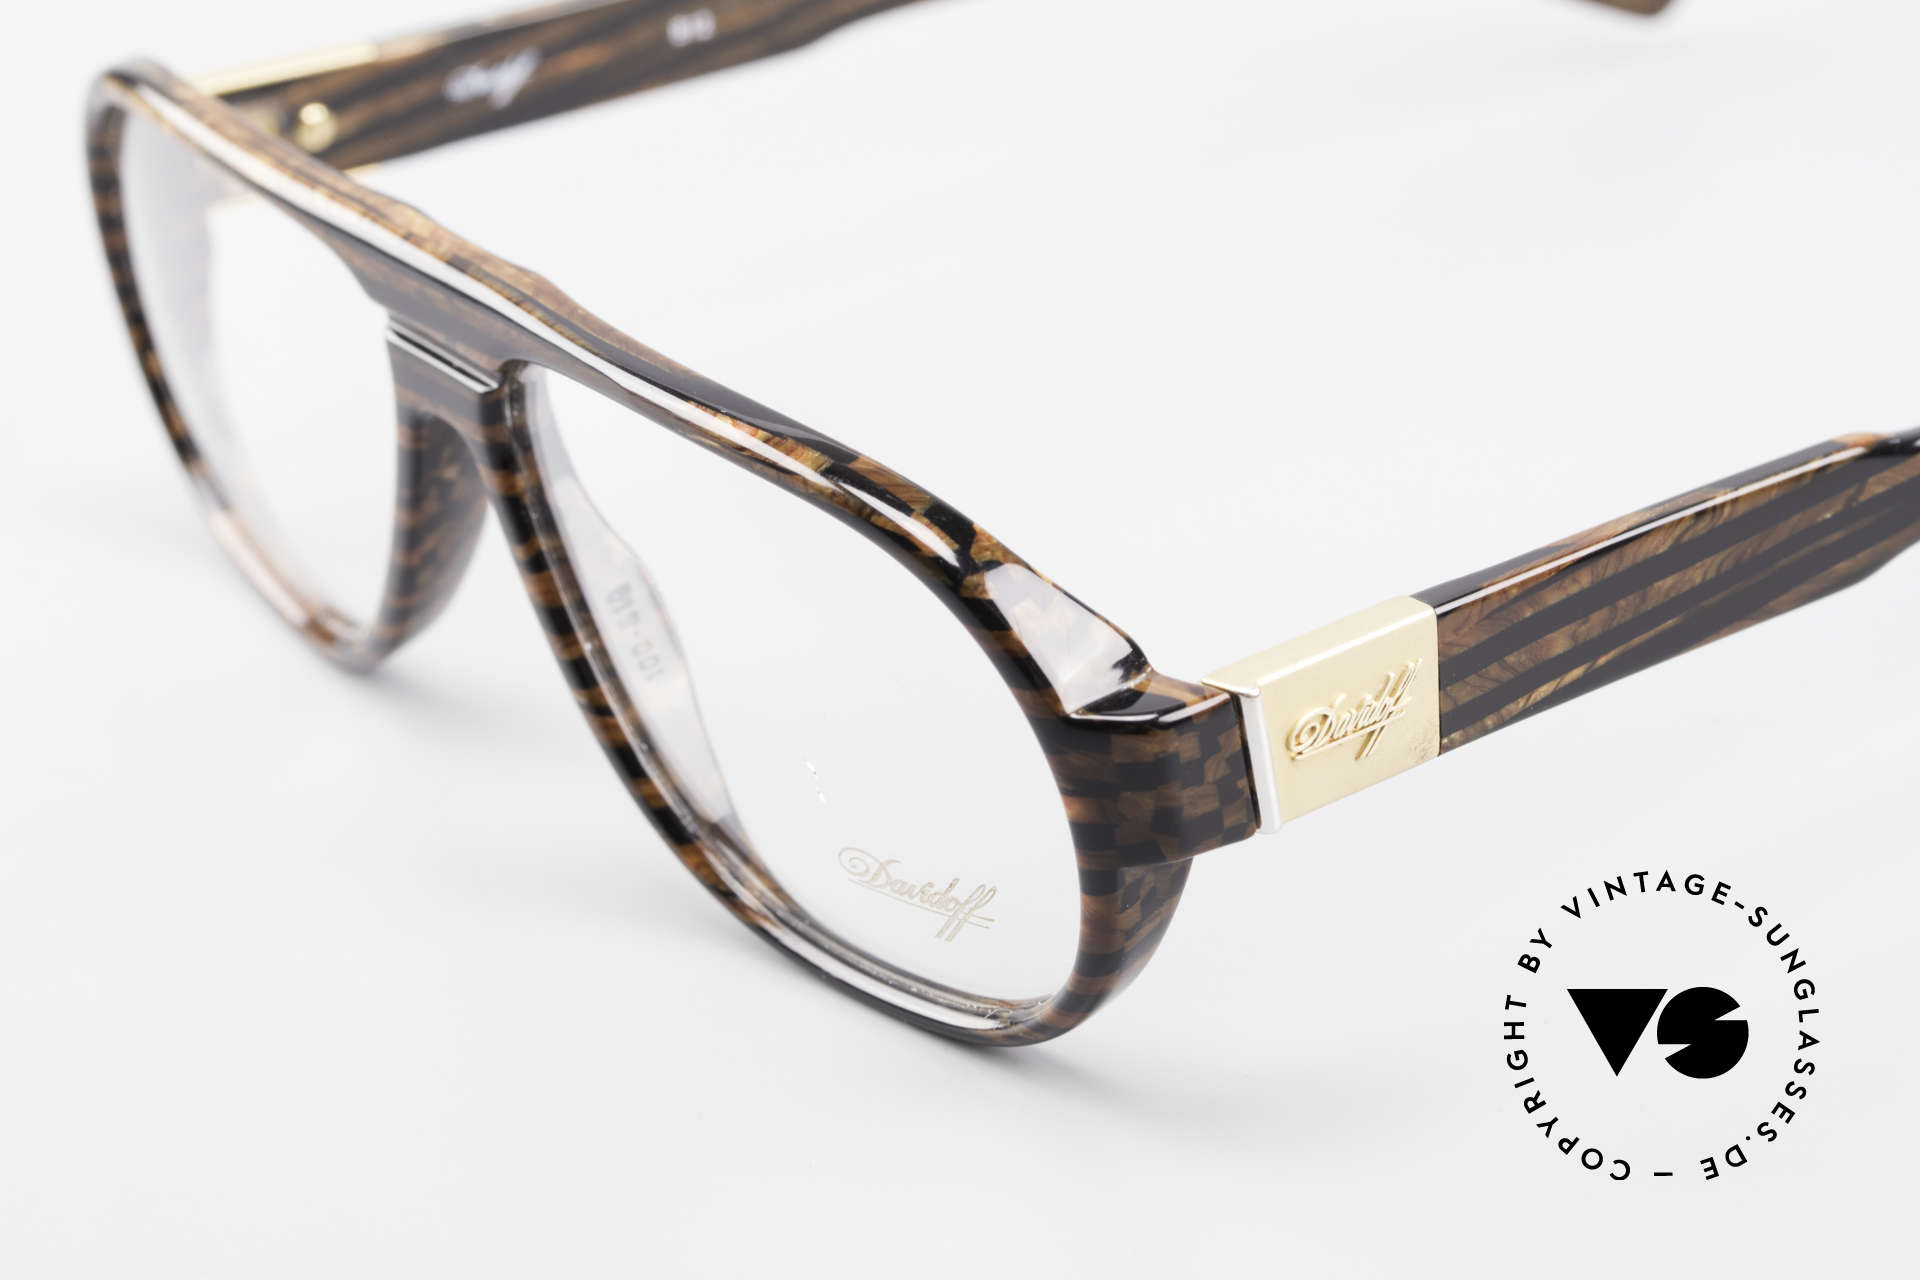 Davidoff 100 90's Men's Vintage Glasses, vintage model for fashion enthusiasts; simply stylish, Made for Men